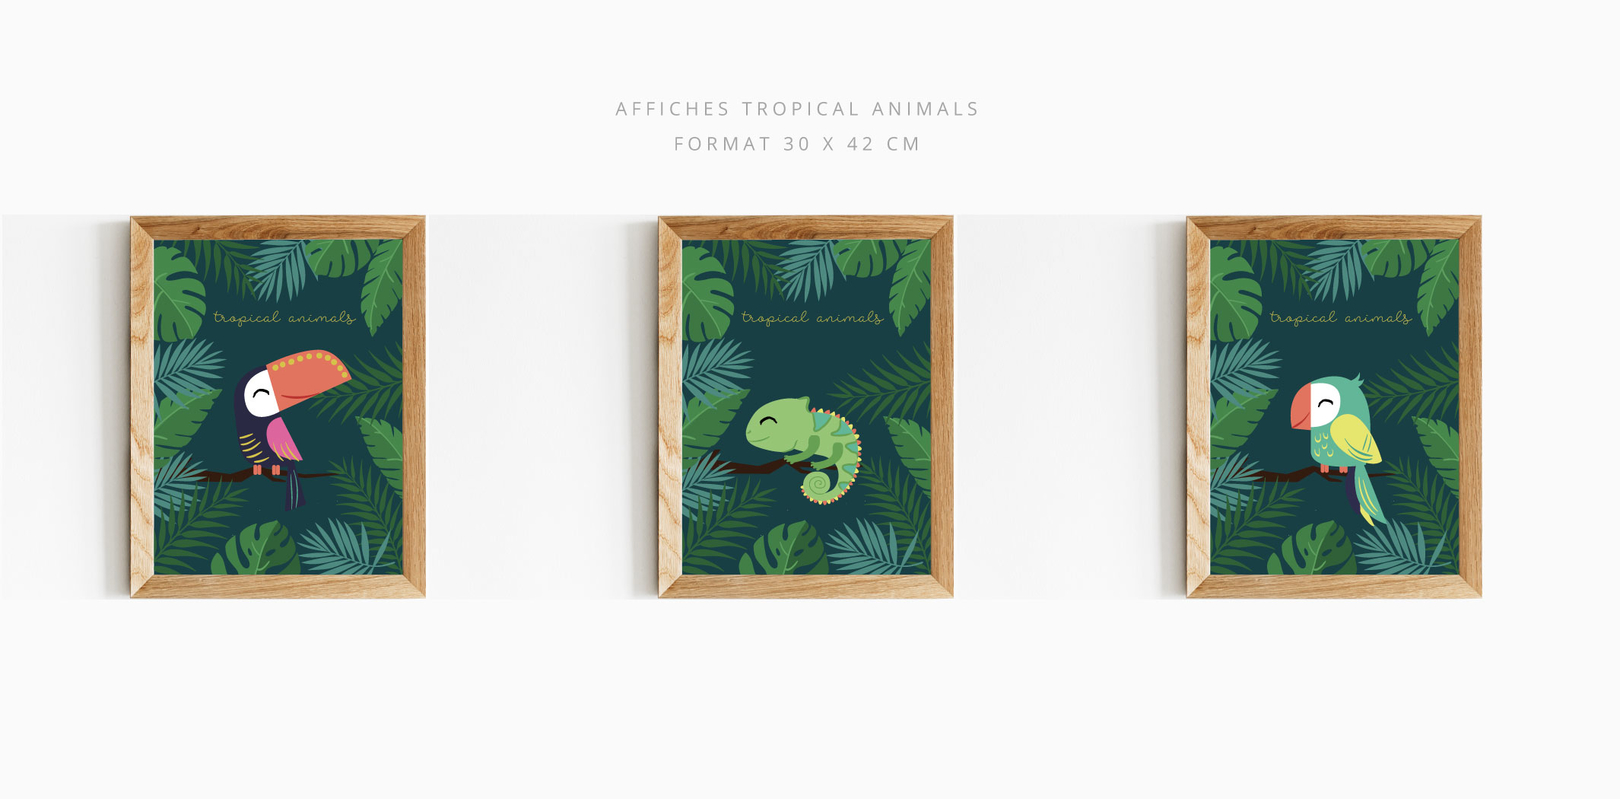 AFFICHE TROPICAL ANIMALS